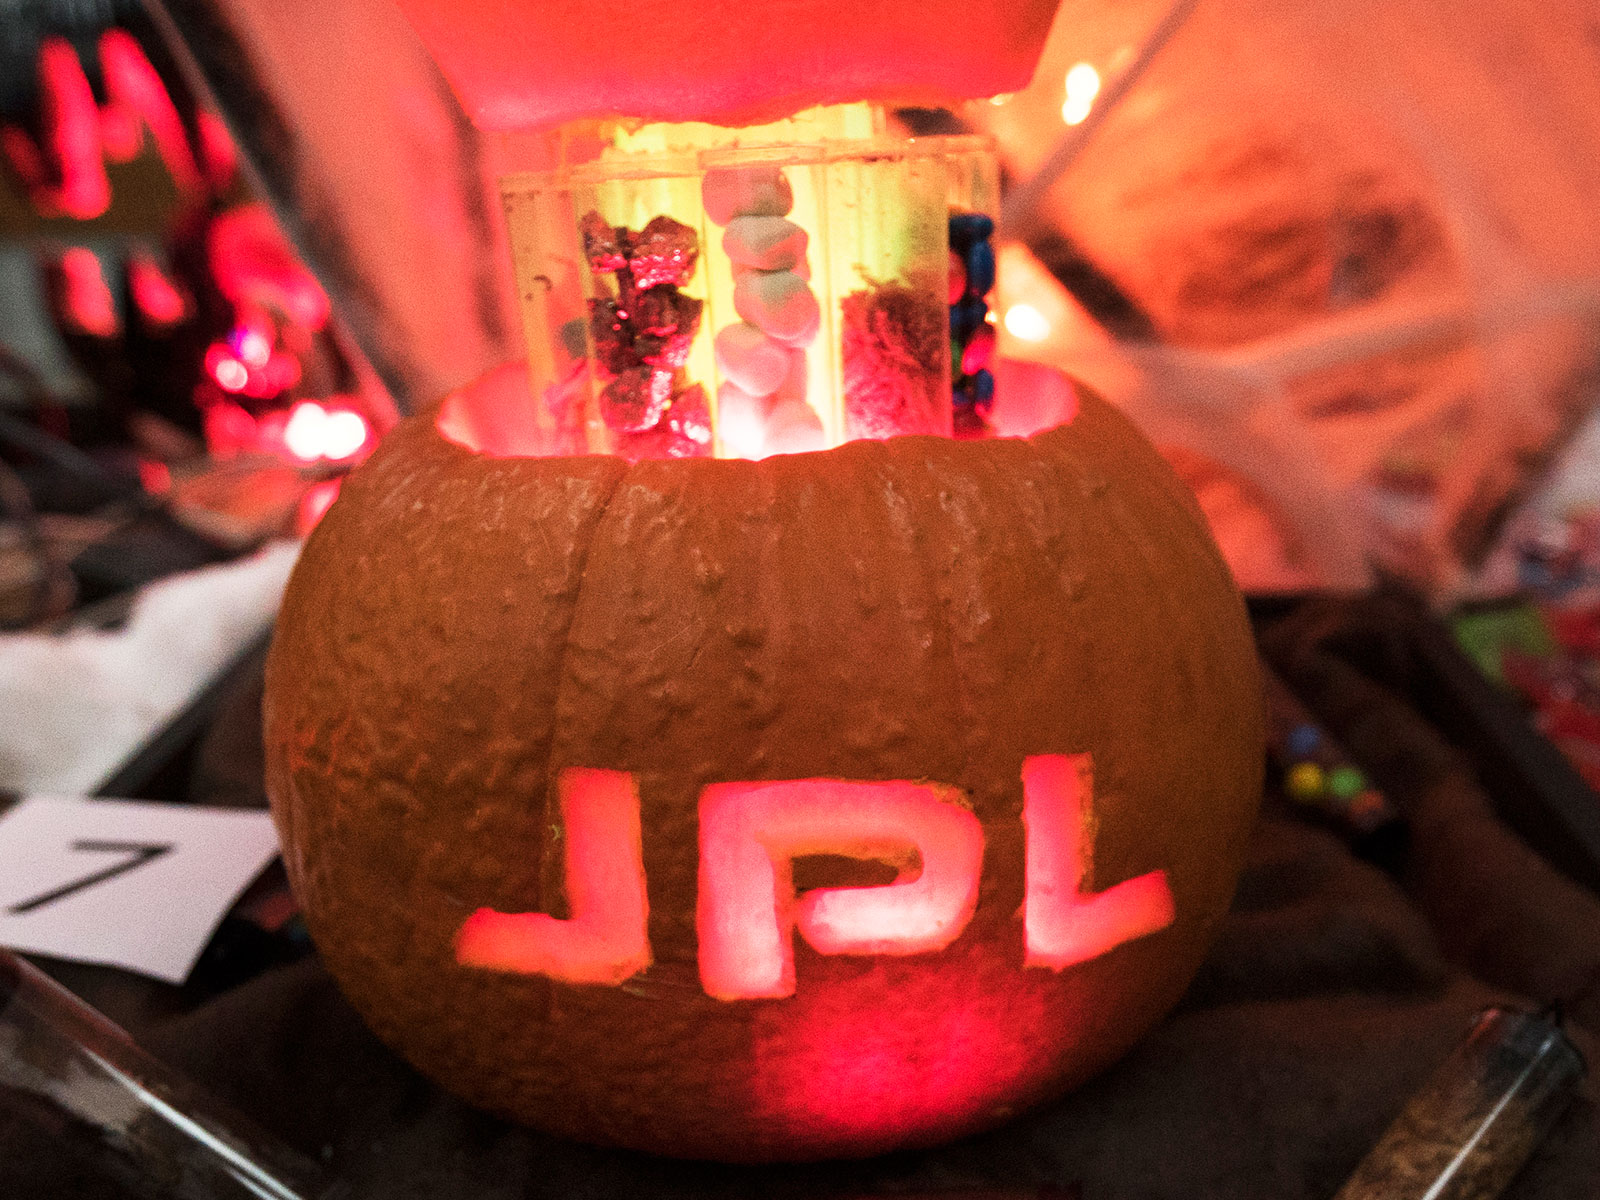 NASA Had a Pumpkin Carving Contest and the Results Were Incredible